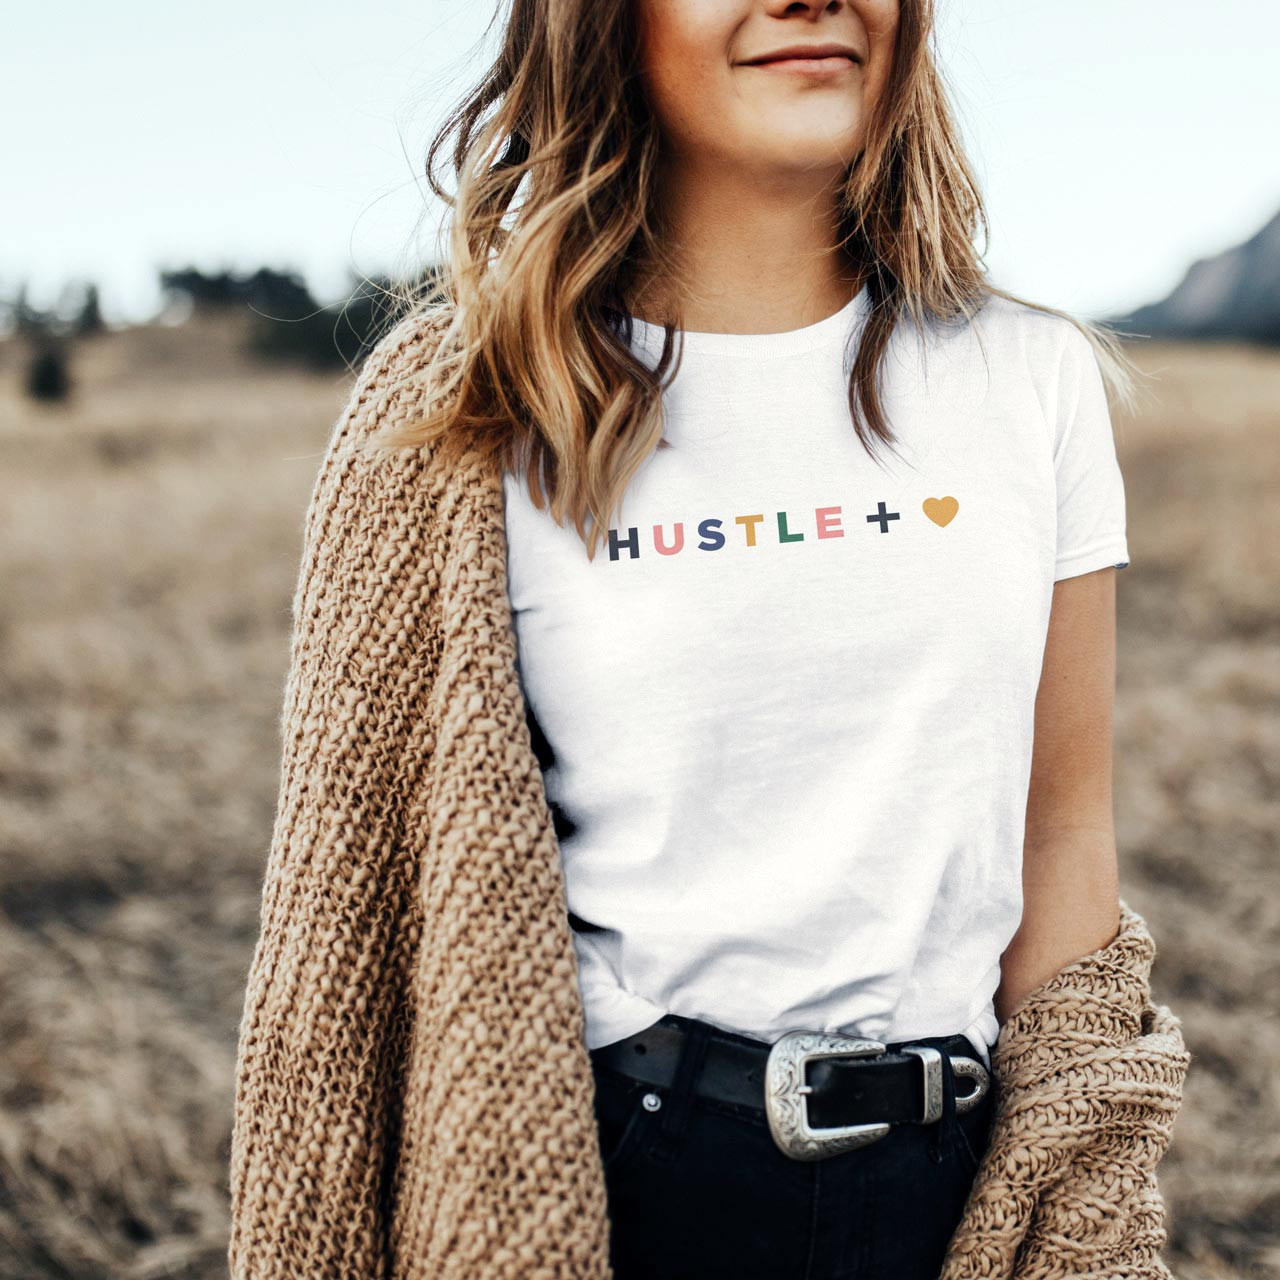 HUSTLE + HEART Cotton T-Shirt (Color on White) from The Printed Home